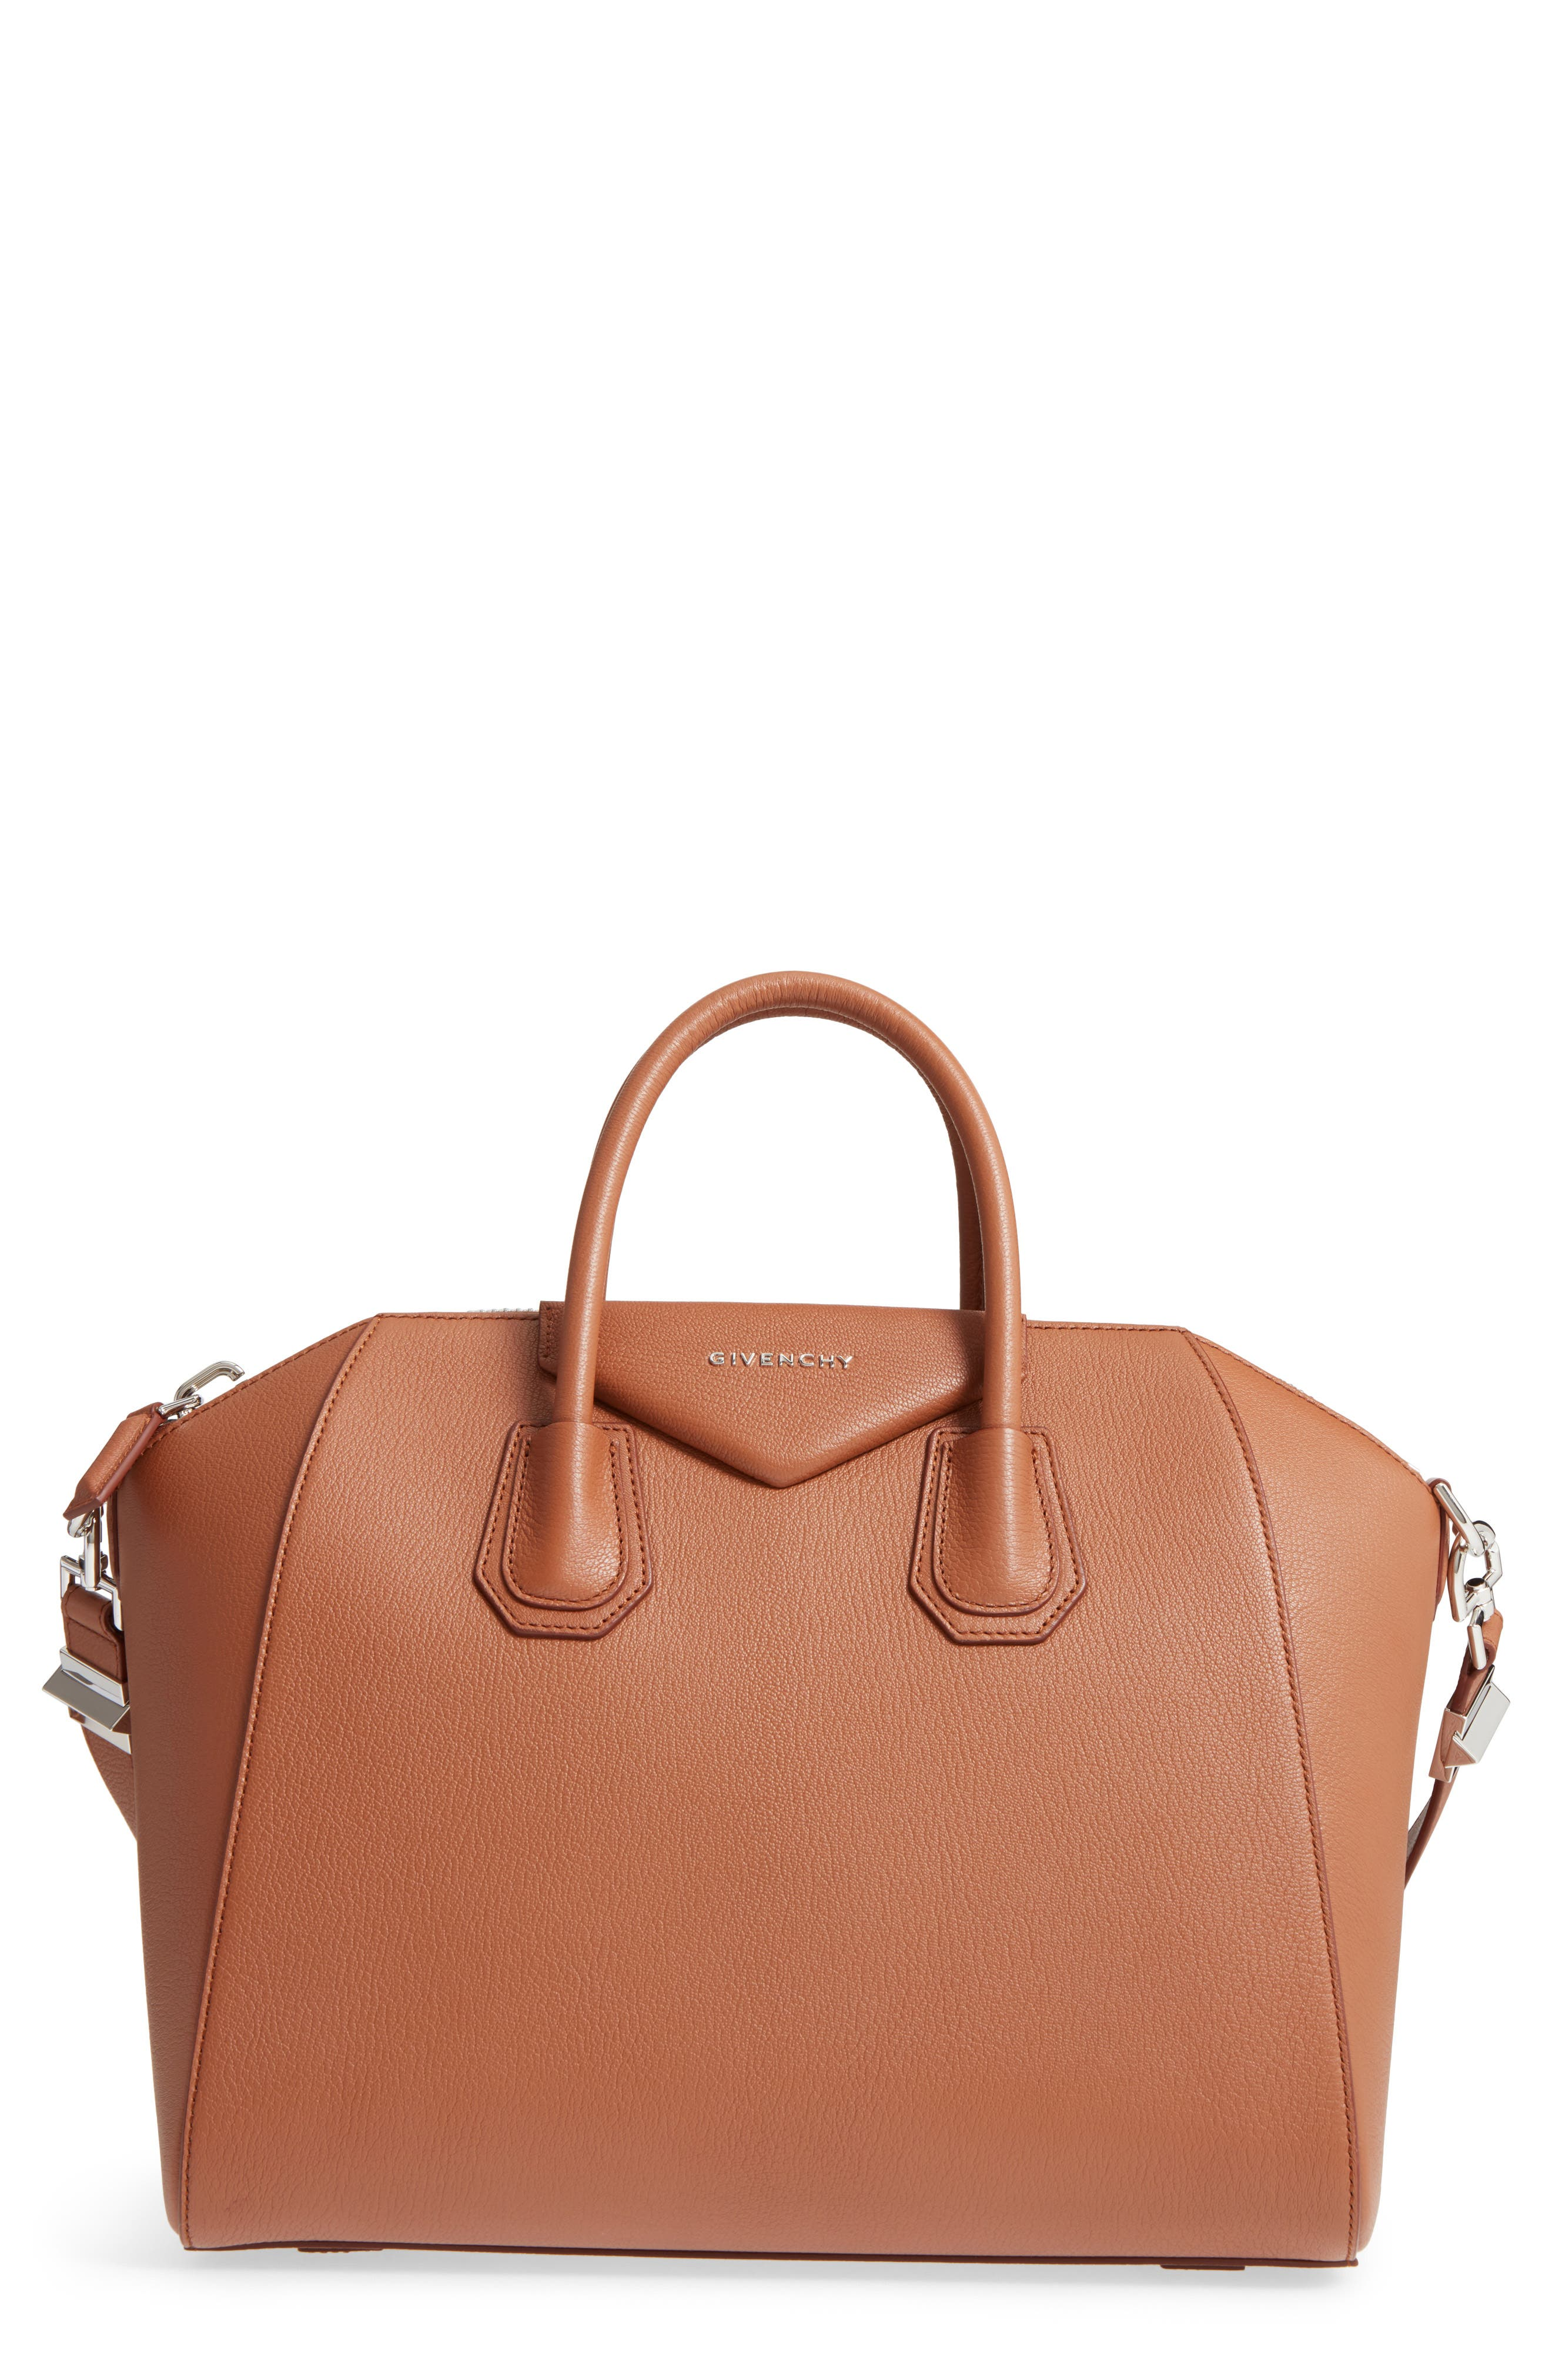 Main Image - Givenchy 'Medium Antigona' Sugar Leather Satchel